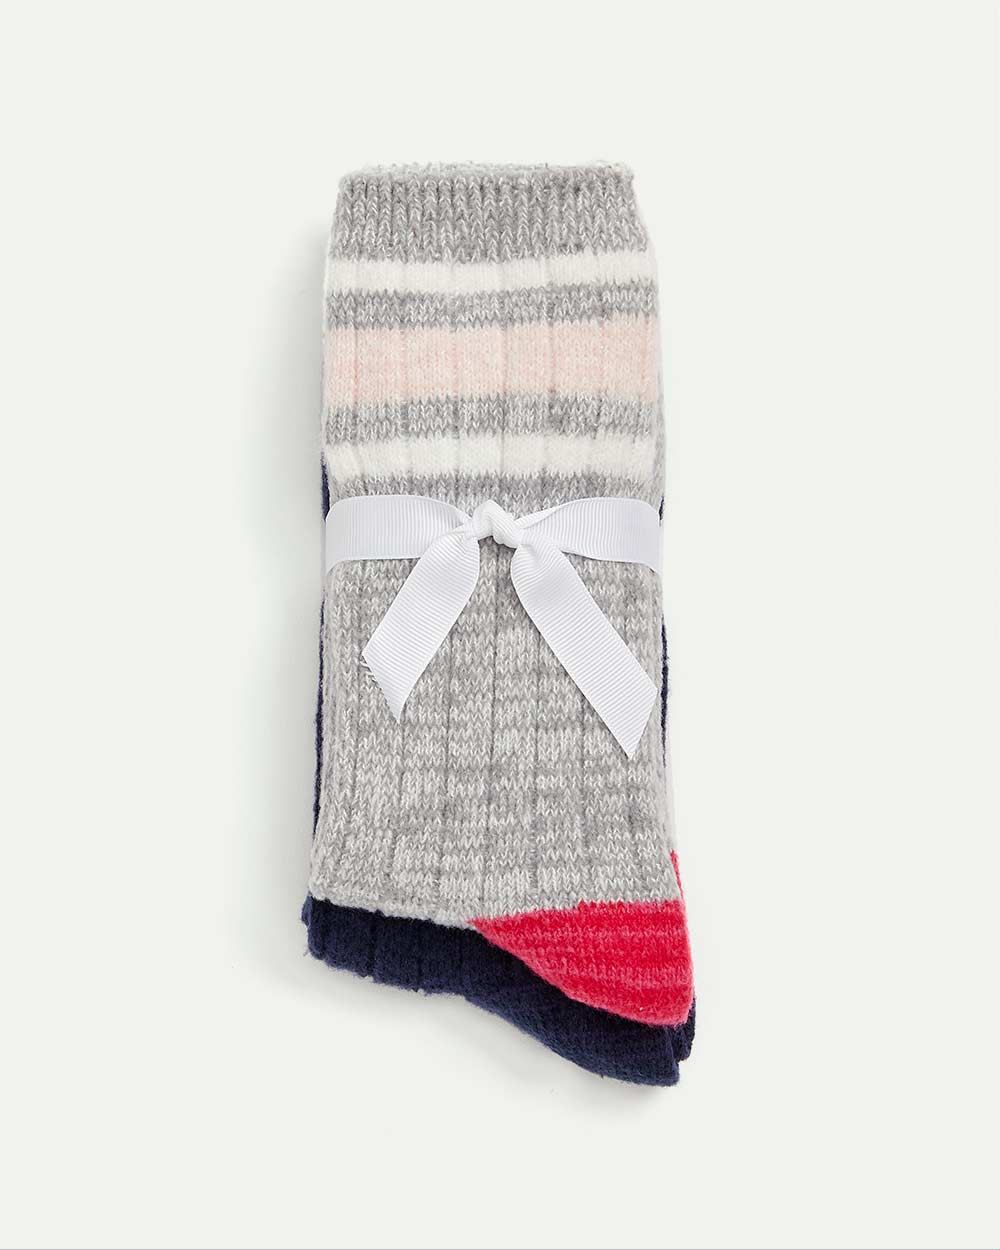 2-Pack Socks - Striped & Solid